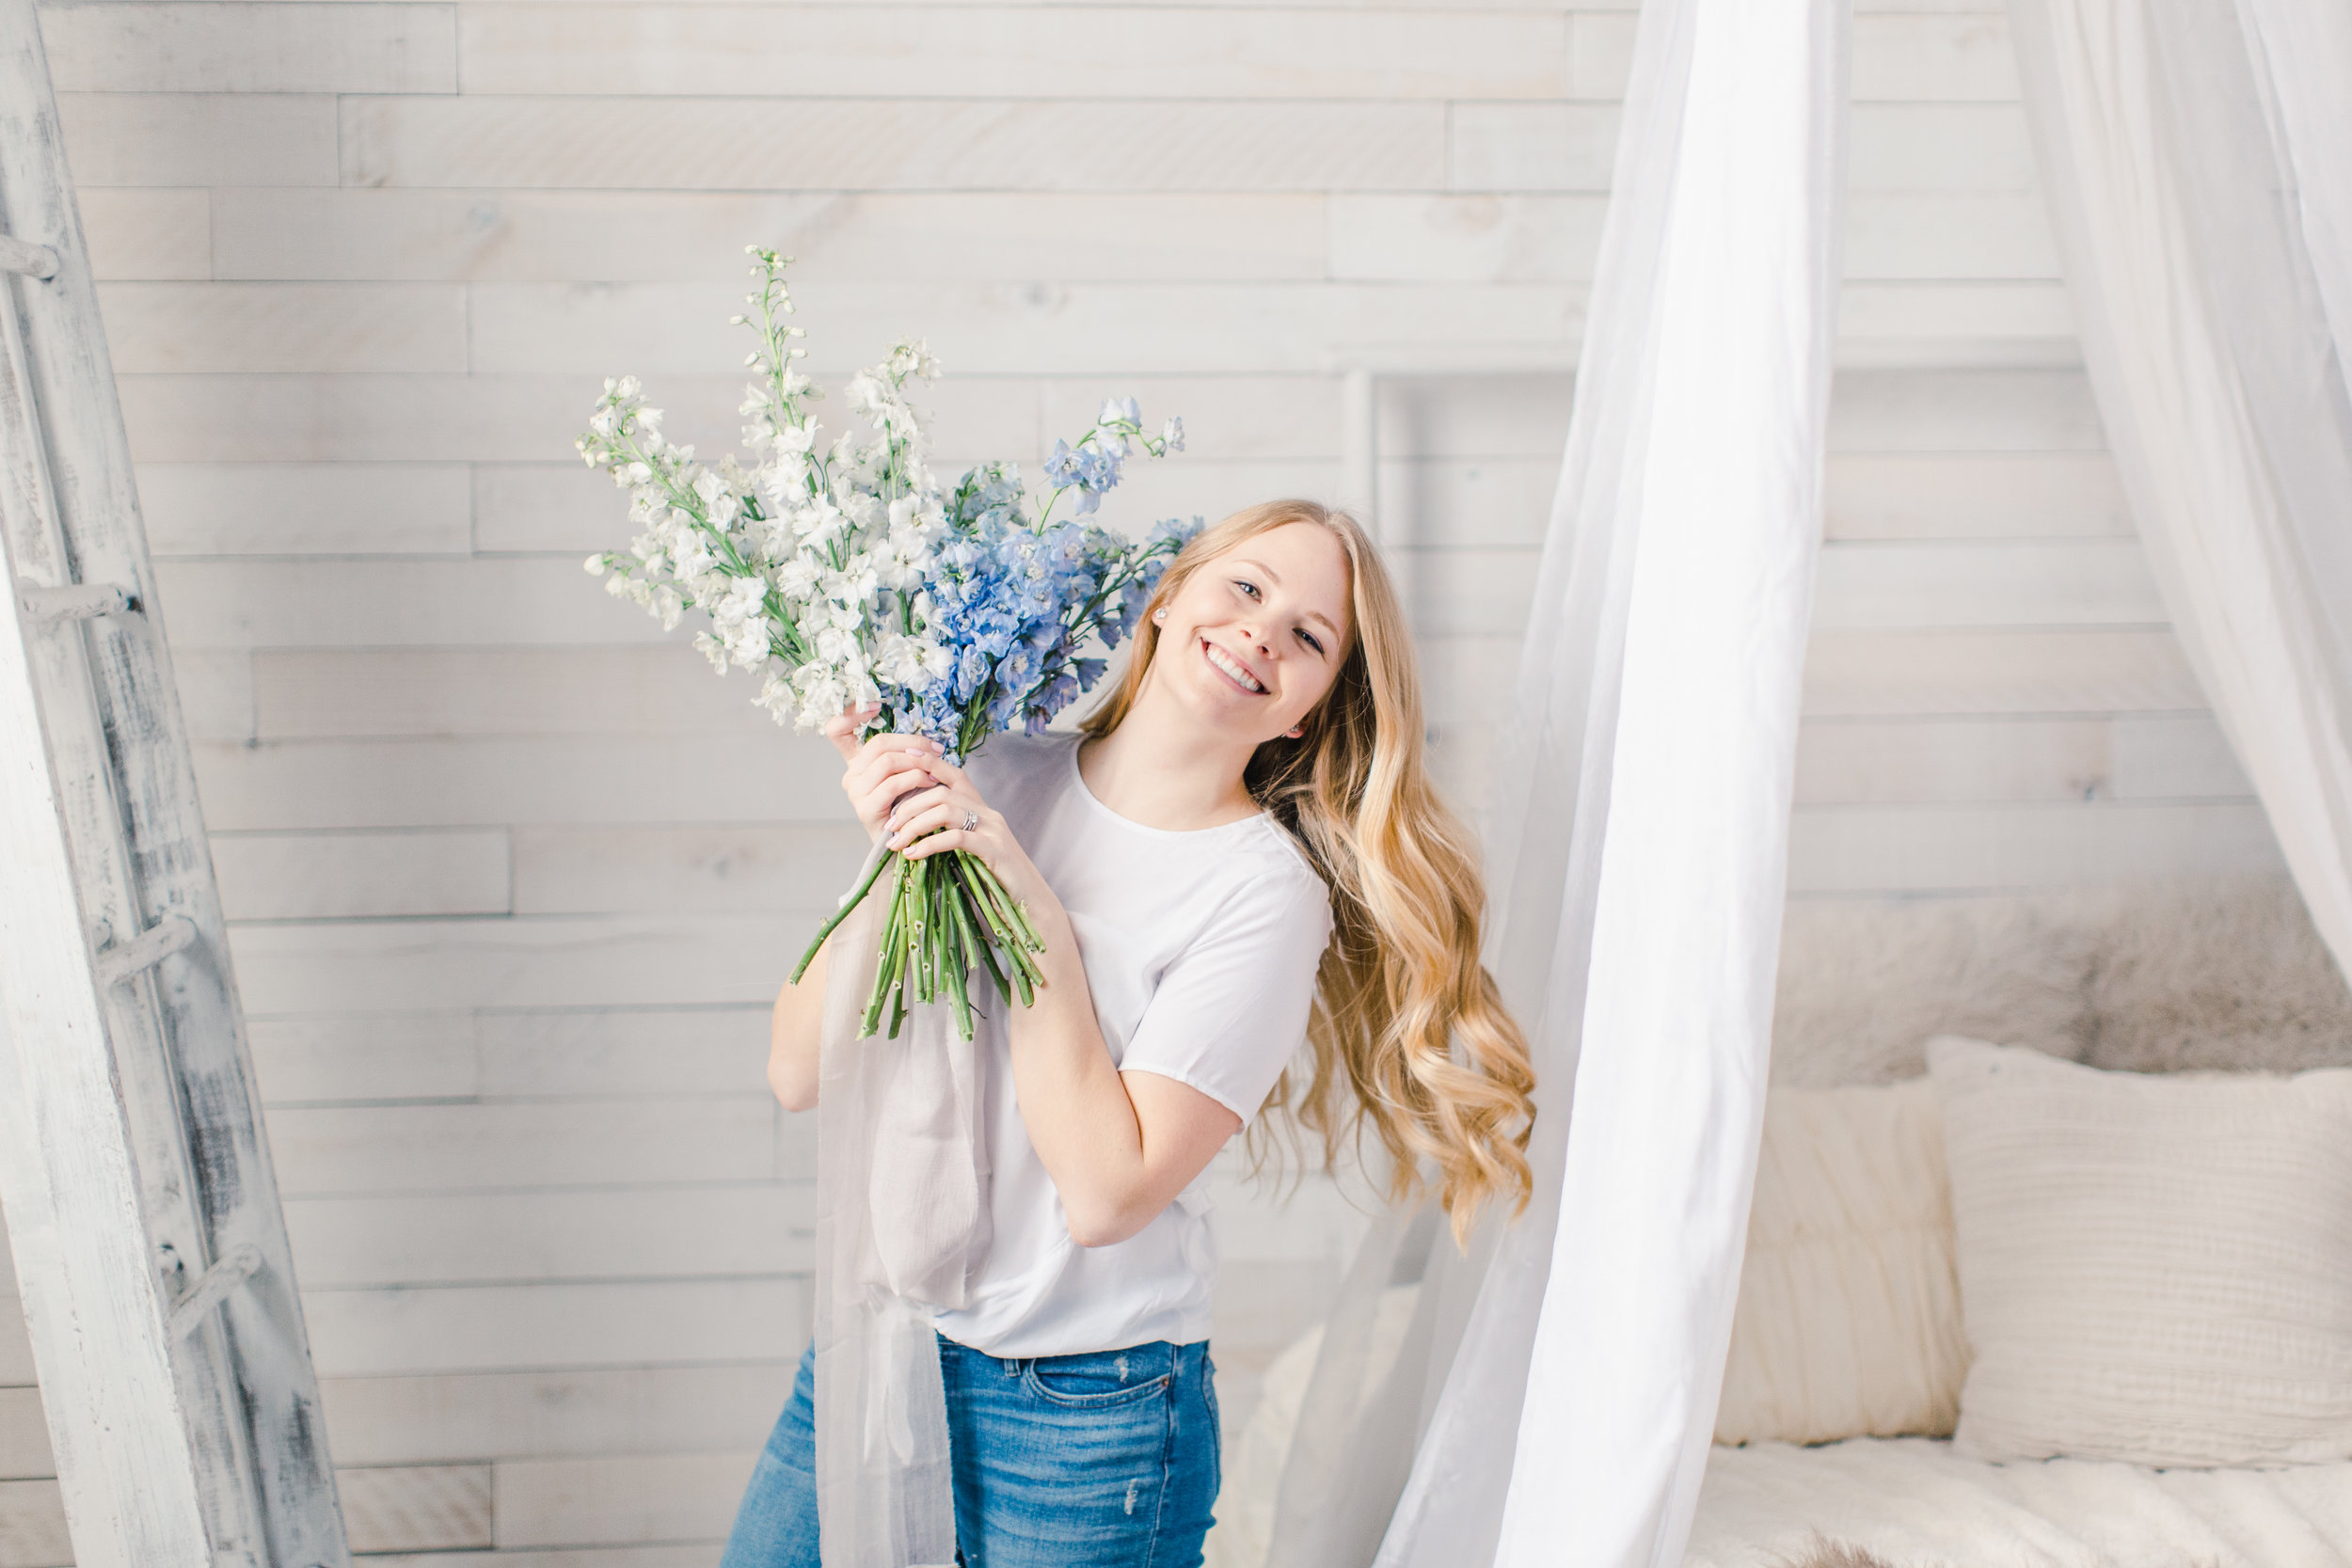 St Paul Lifestyle Portrait Session with fresh spring flowers